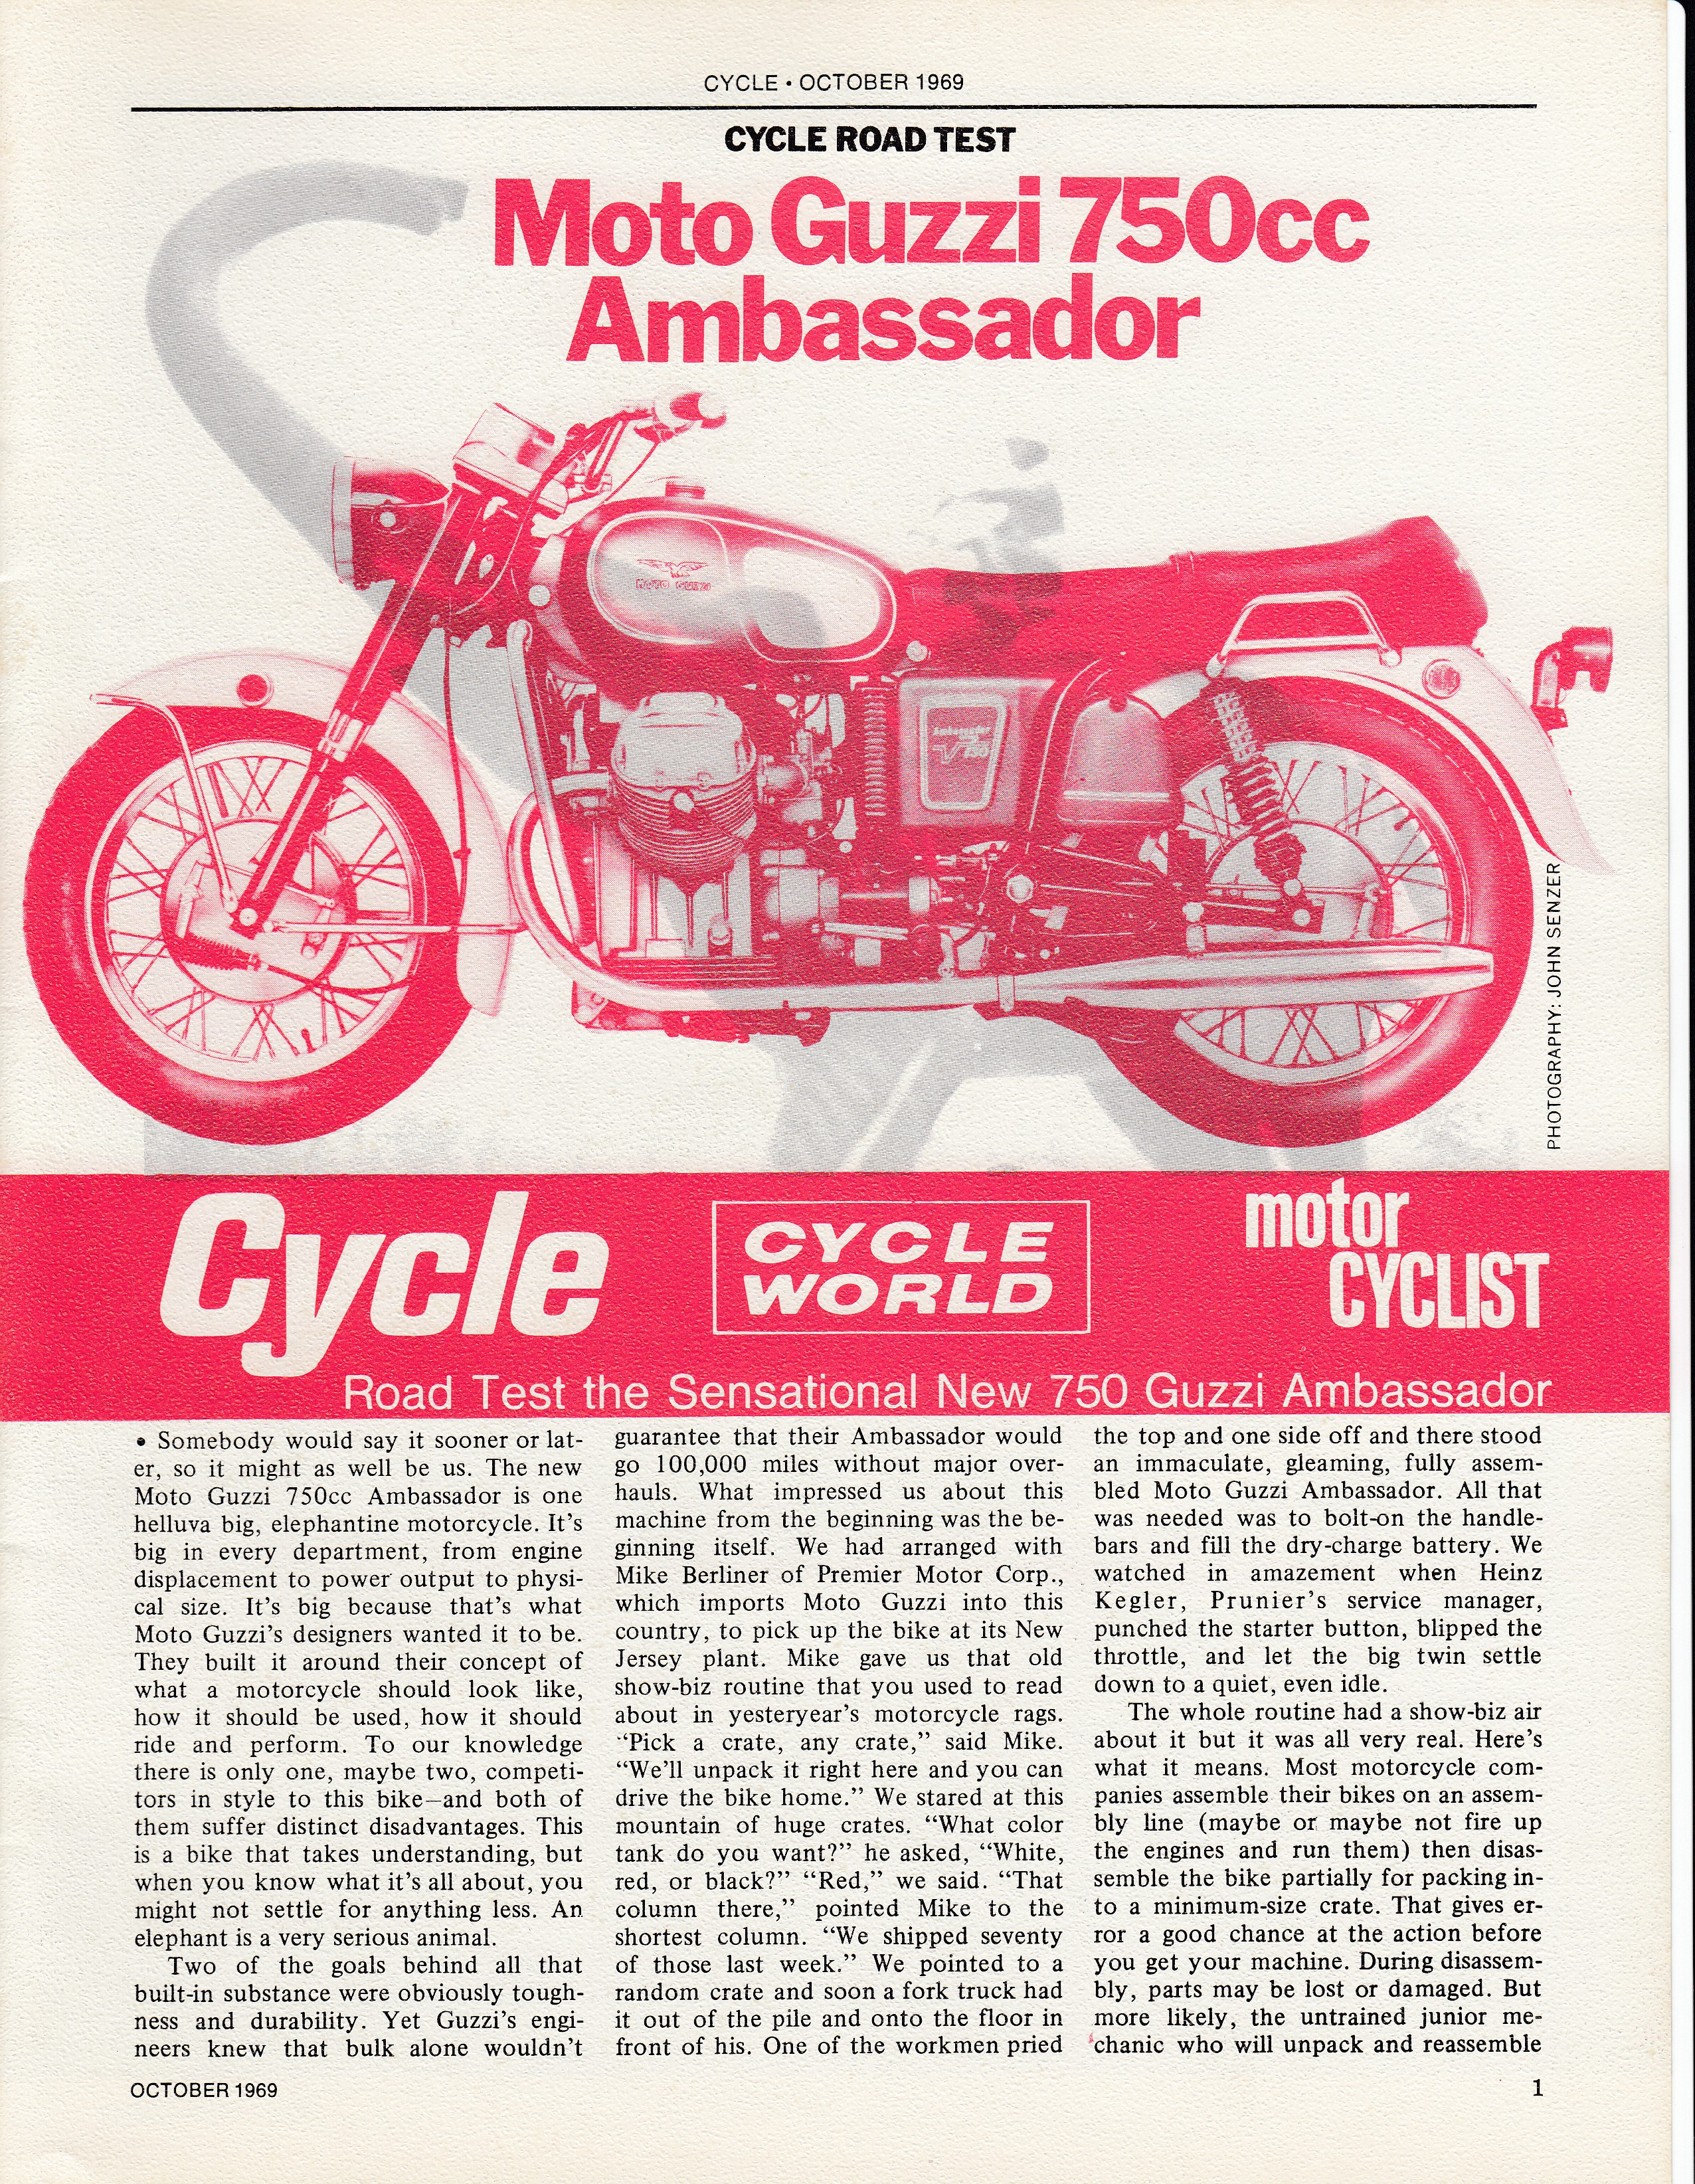 Moto Guzzi Ambassador factory brochure of magazine reviews, Page 1 of 16.